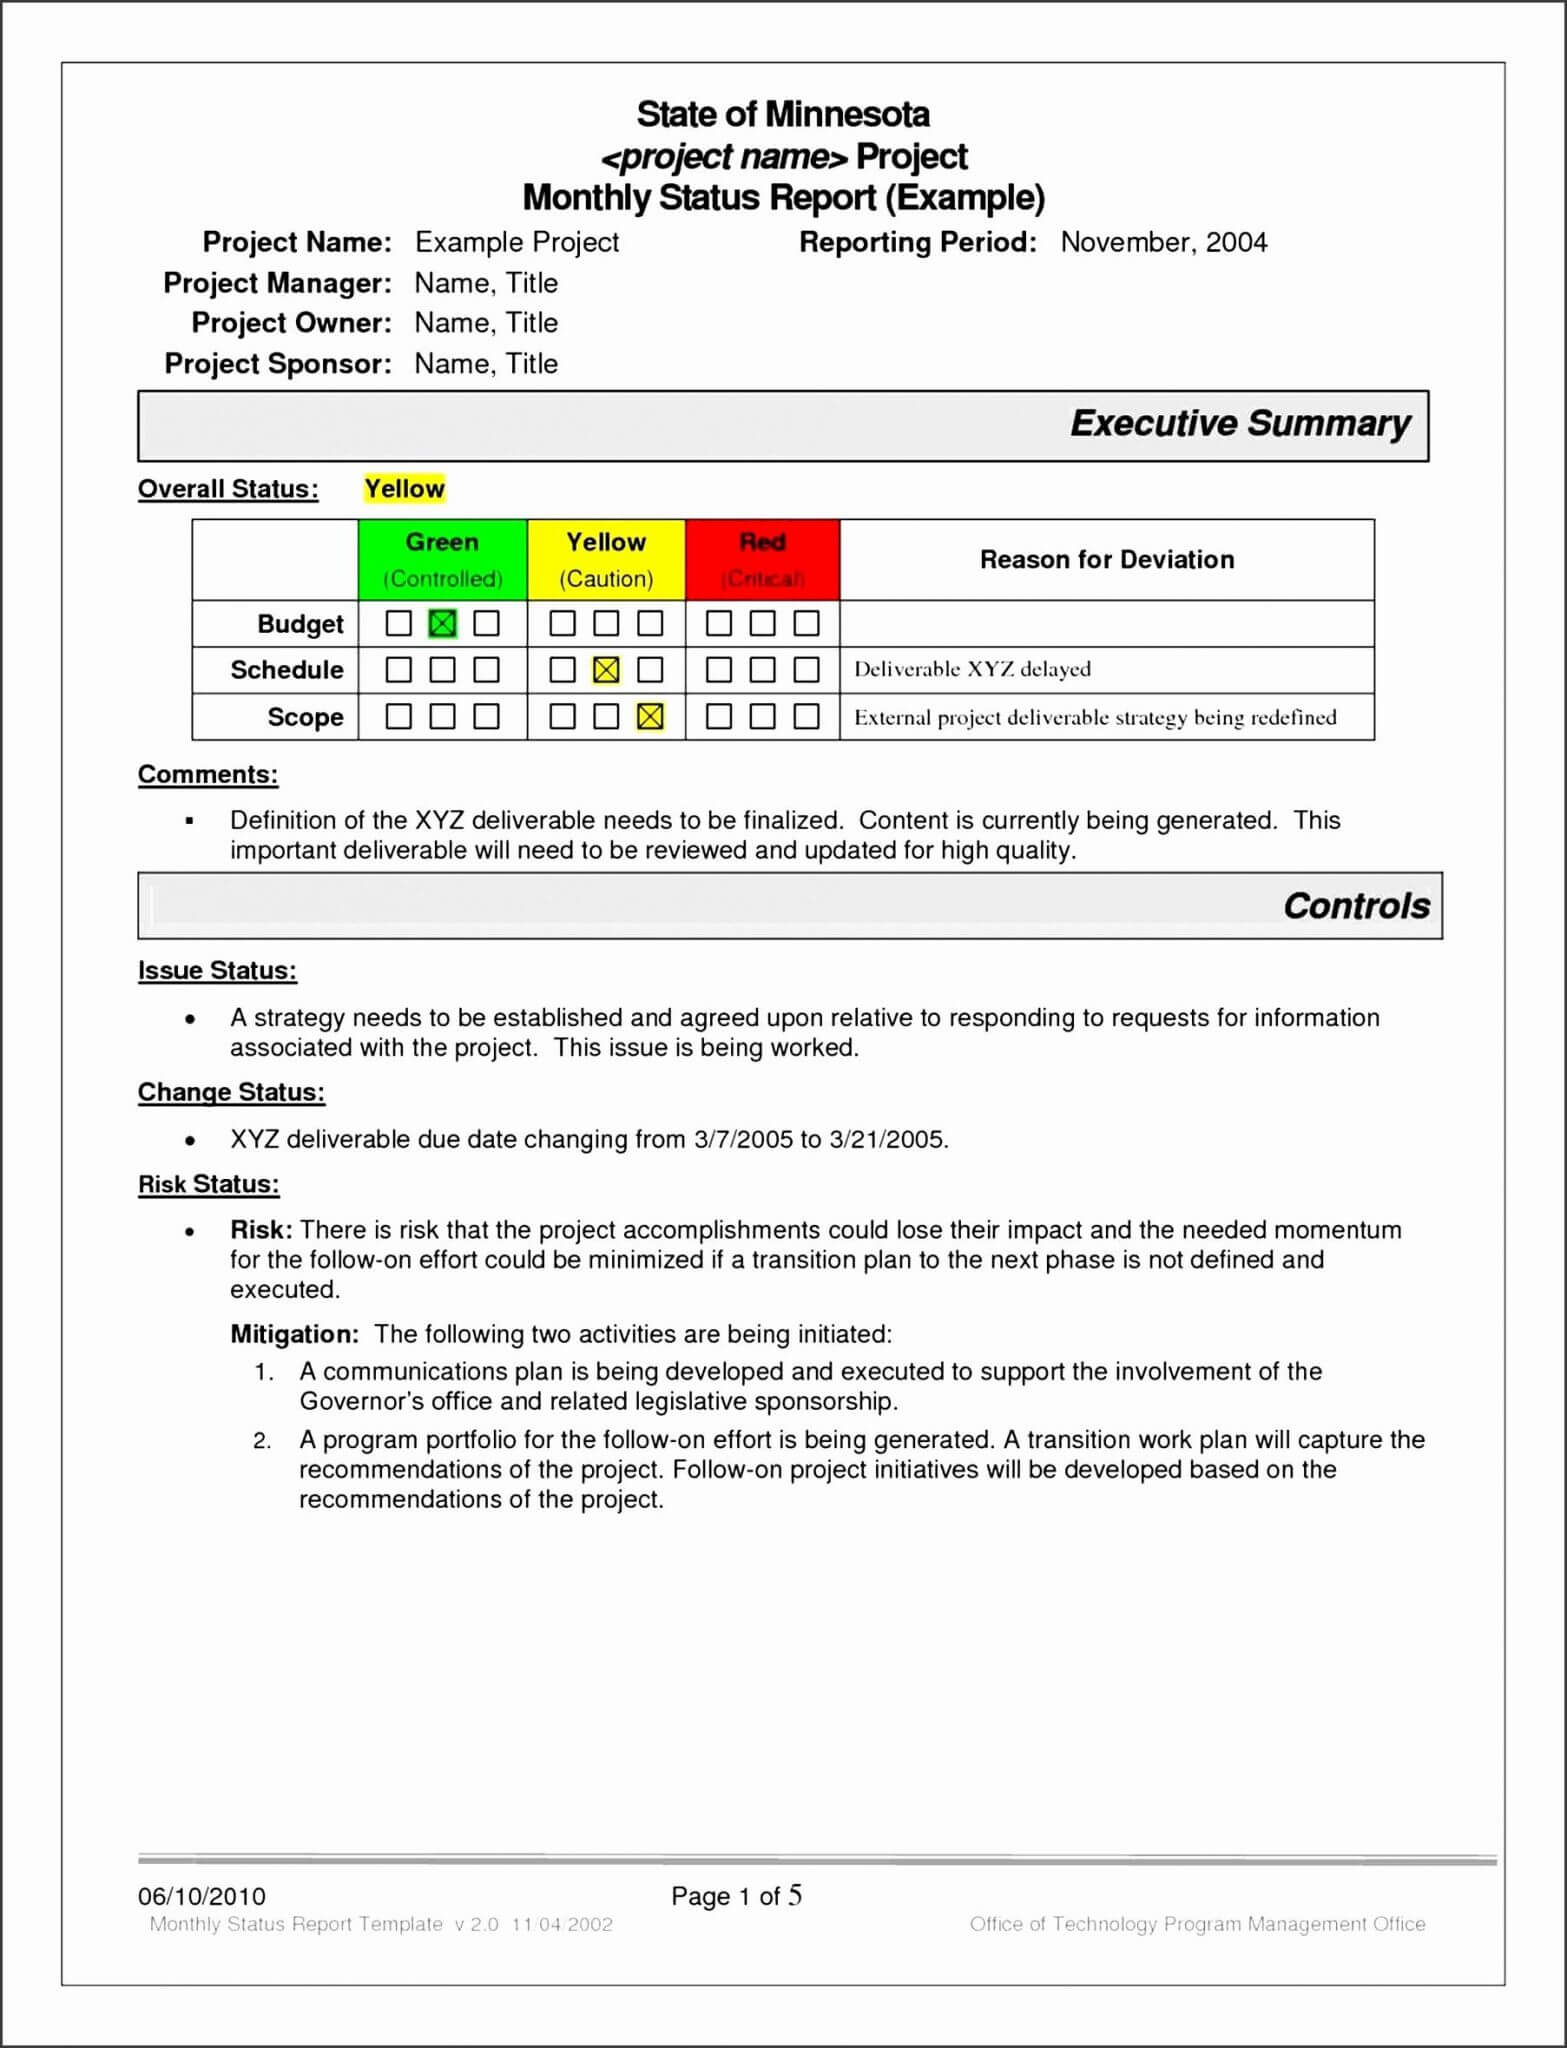 Daily Field Report Template | Glendale Community Inside Field Report Template